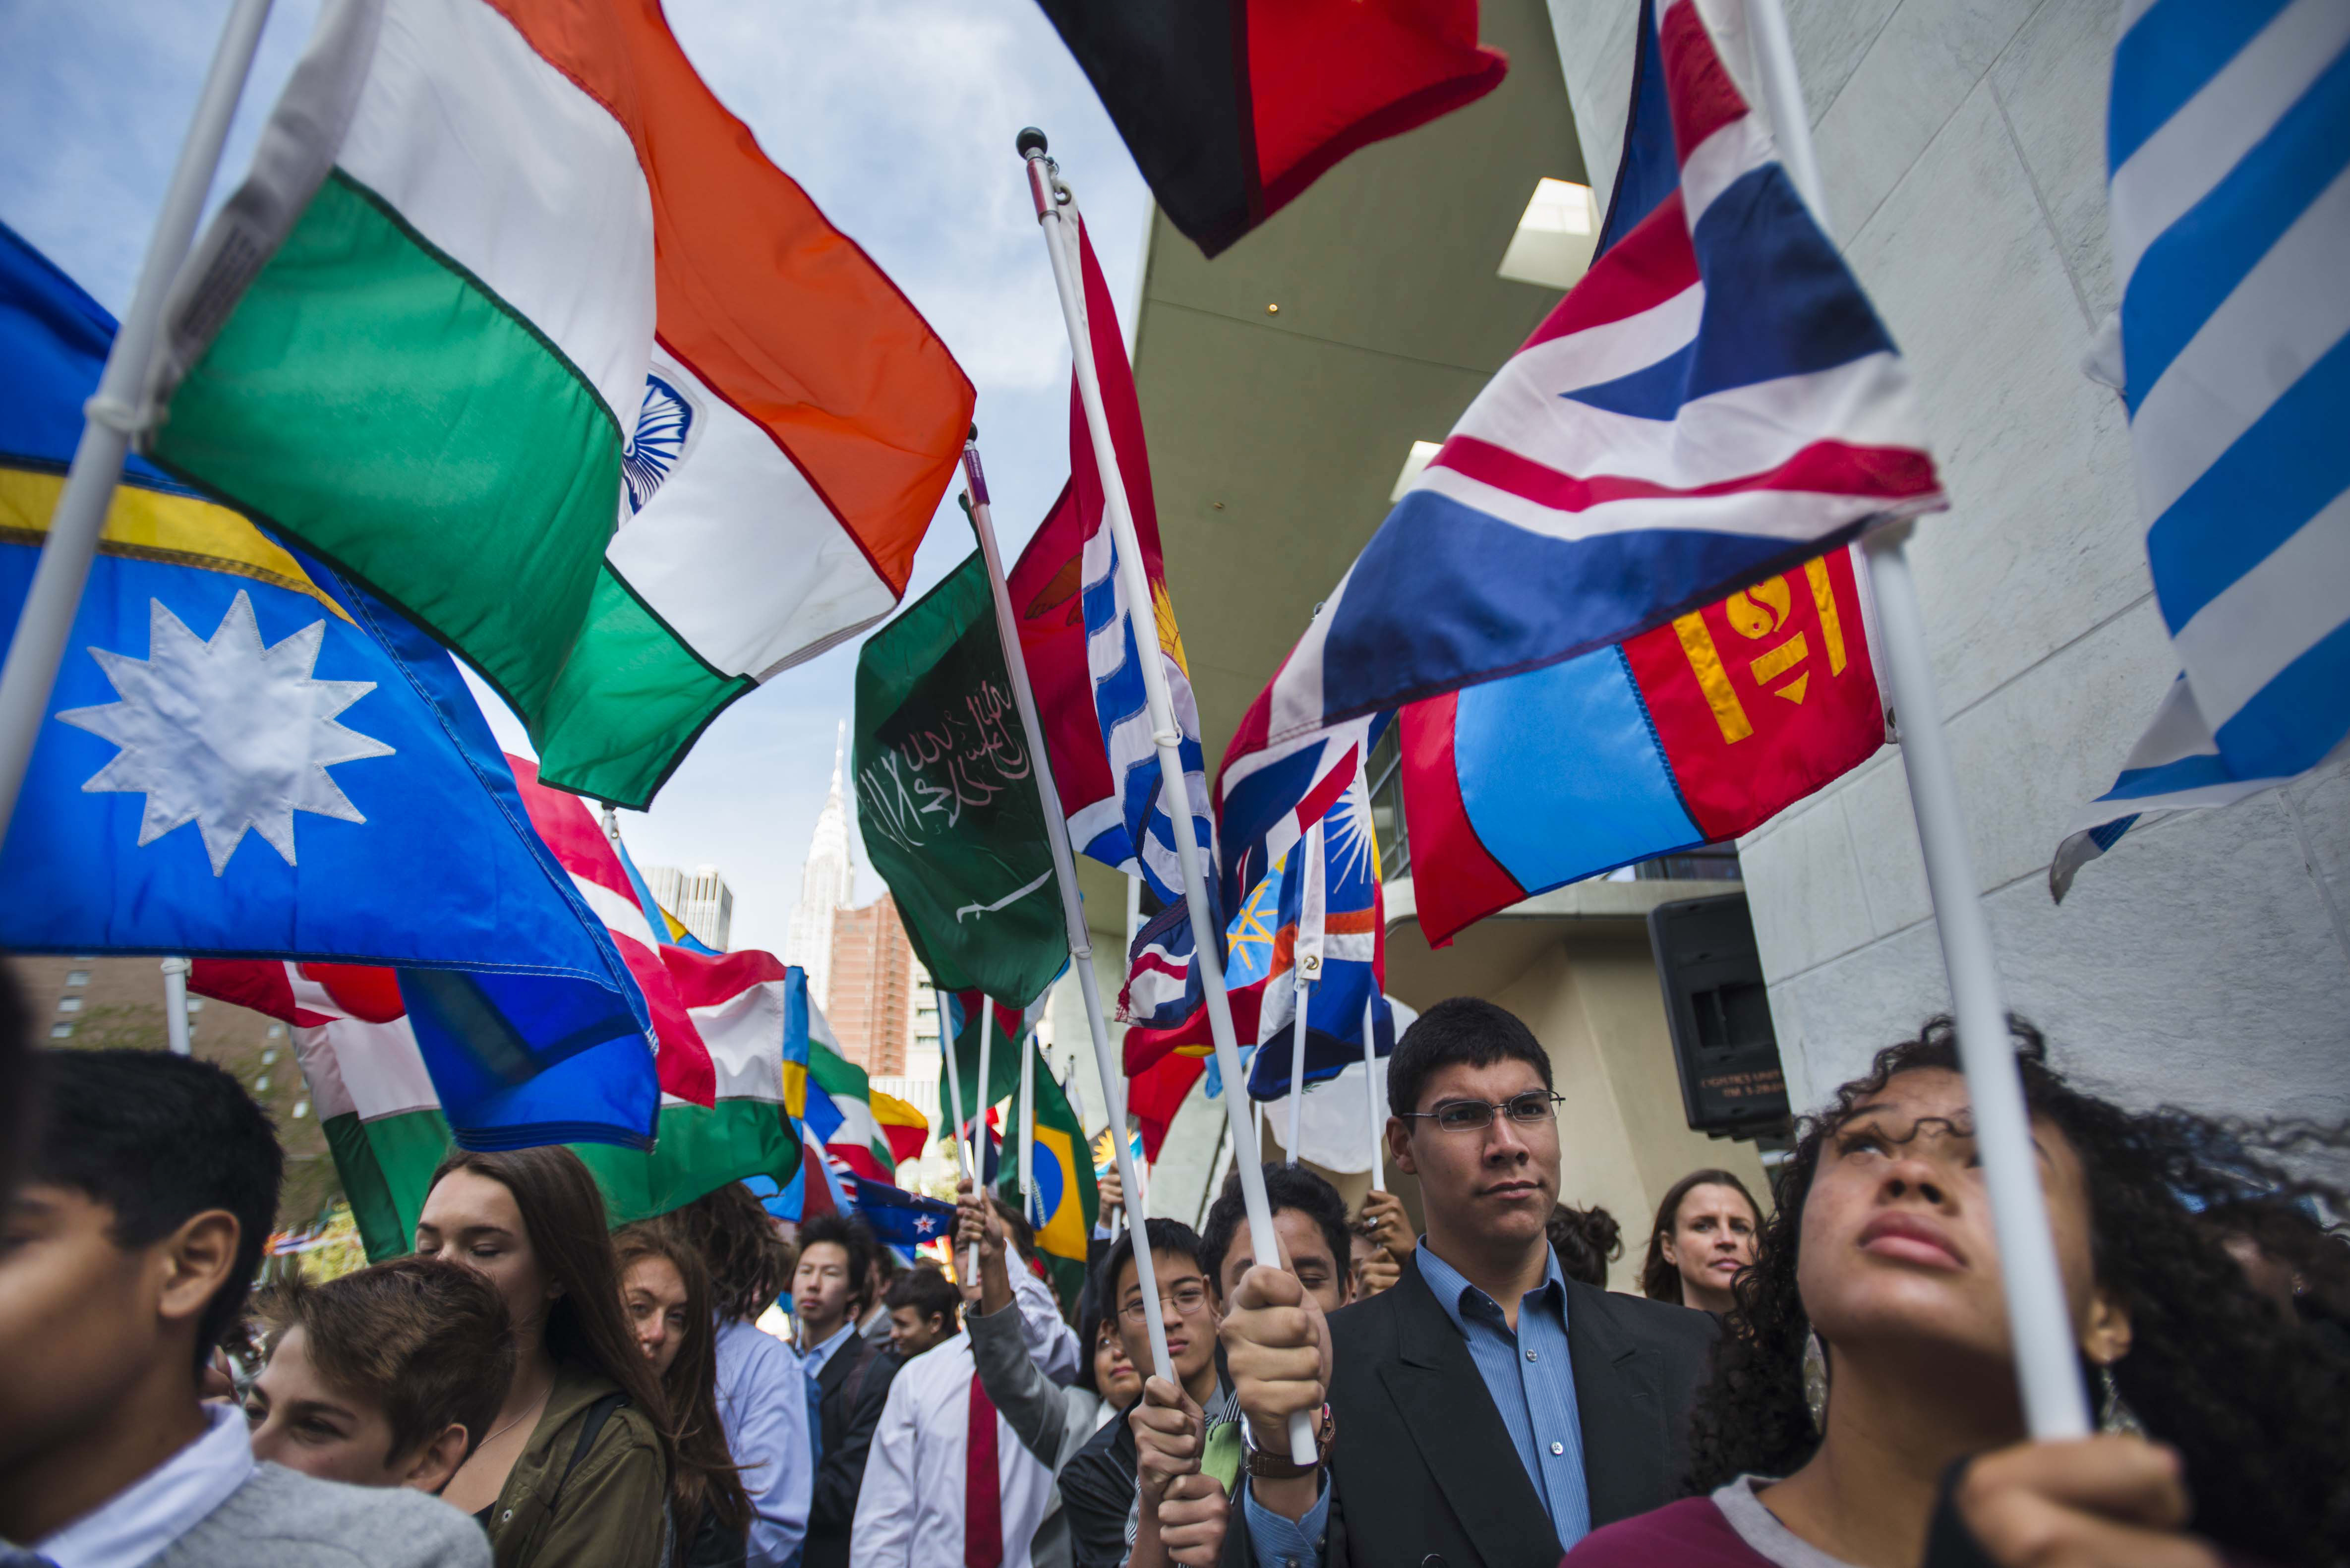 Students  carry  the  flags  of  United  Nations  Member  States  during  the  annual  Peace  Bell  Ceremony  held  in  observance  of  the  International  Day  of  Peace  (21  September),  ahead  of  the  70th  session  of  the  General  Assembly Photo: UN Photo/Amanda Voisard